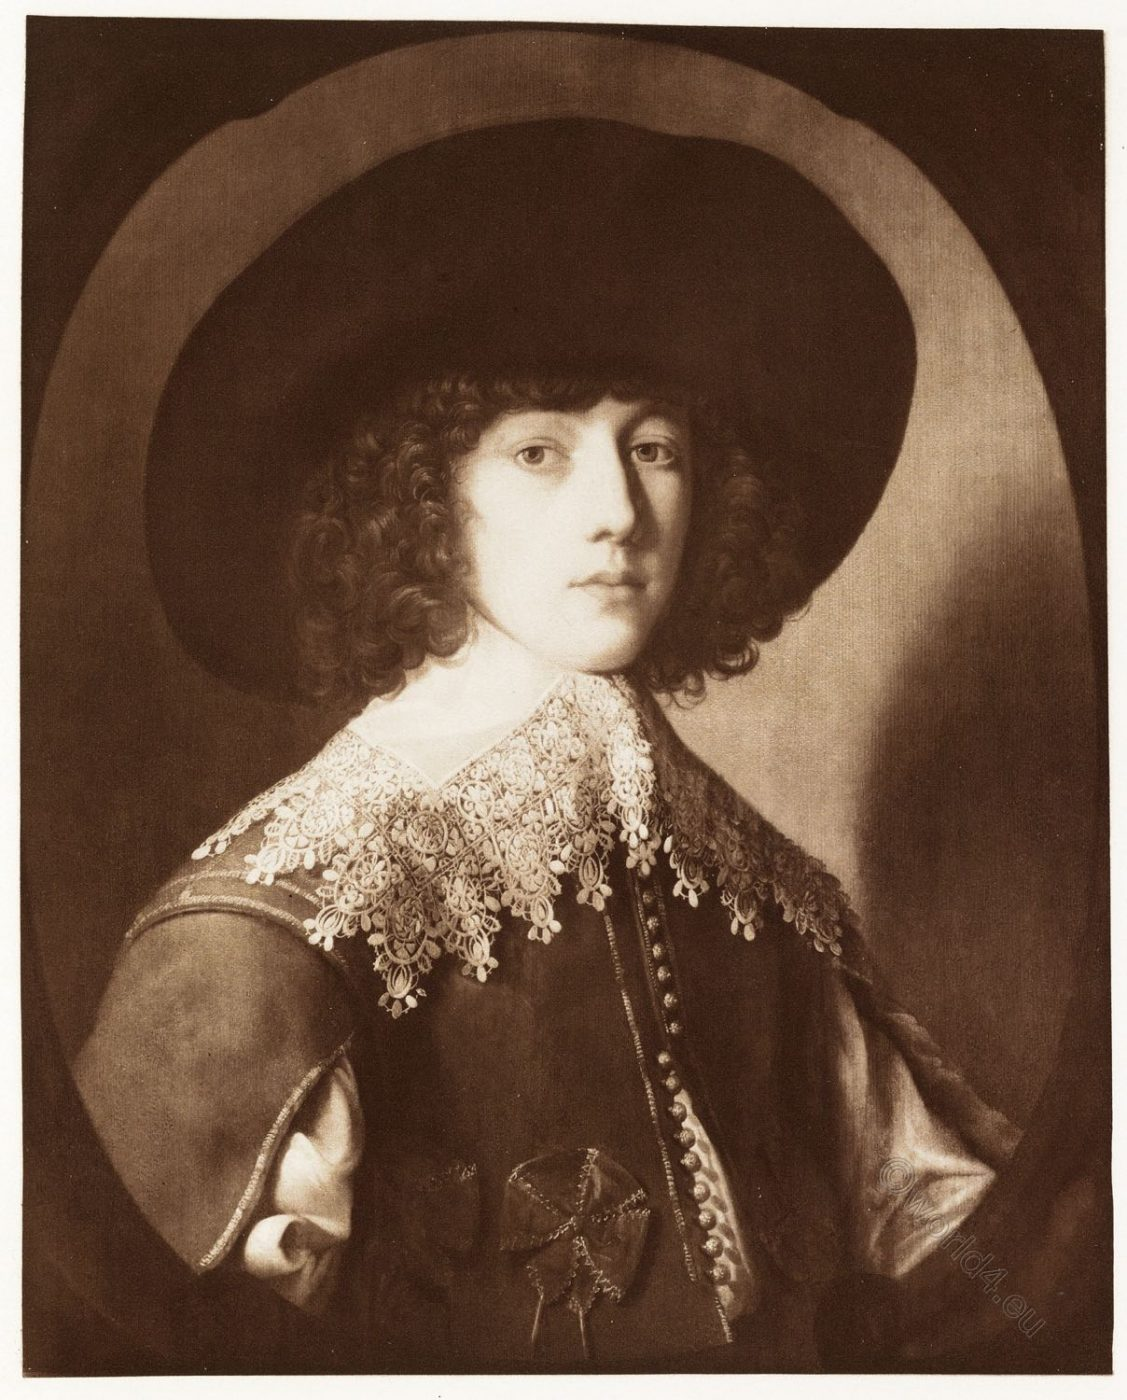 Prince Rupert, Count Palatine of the Rhine, Wilton House, Collection, Baroque, nobility, England